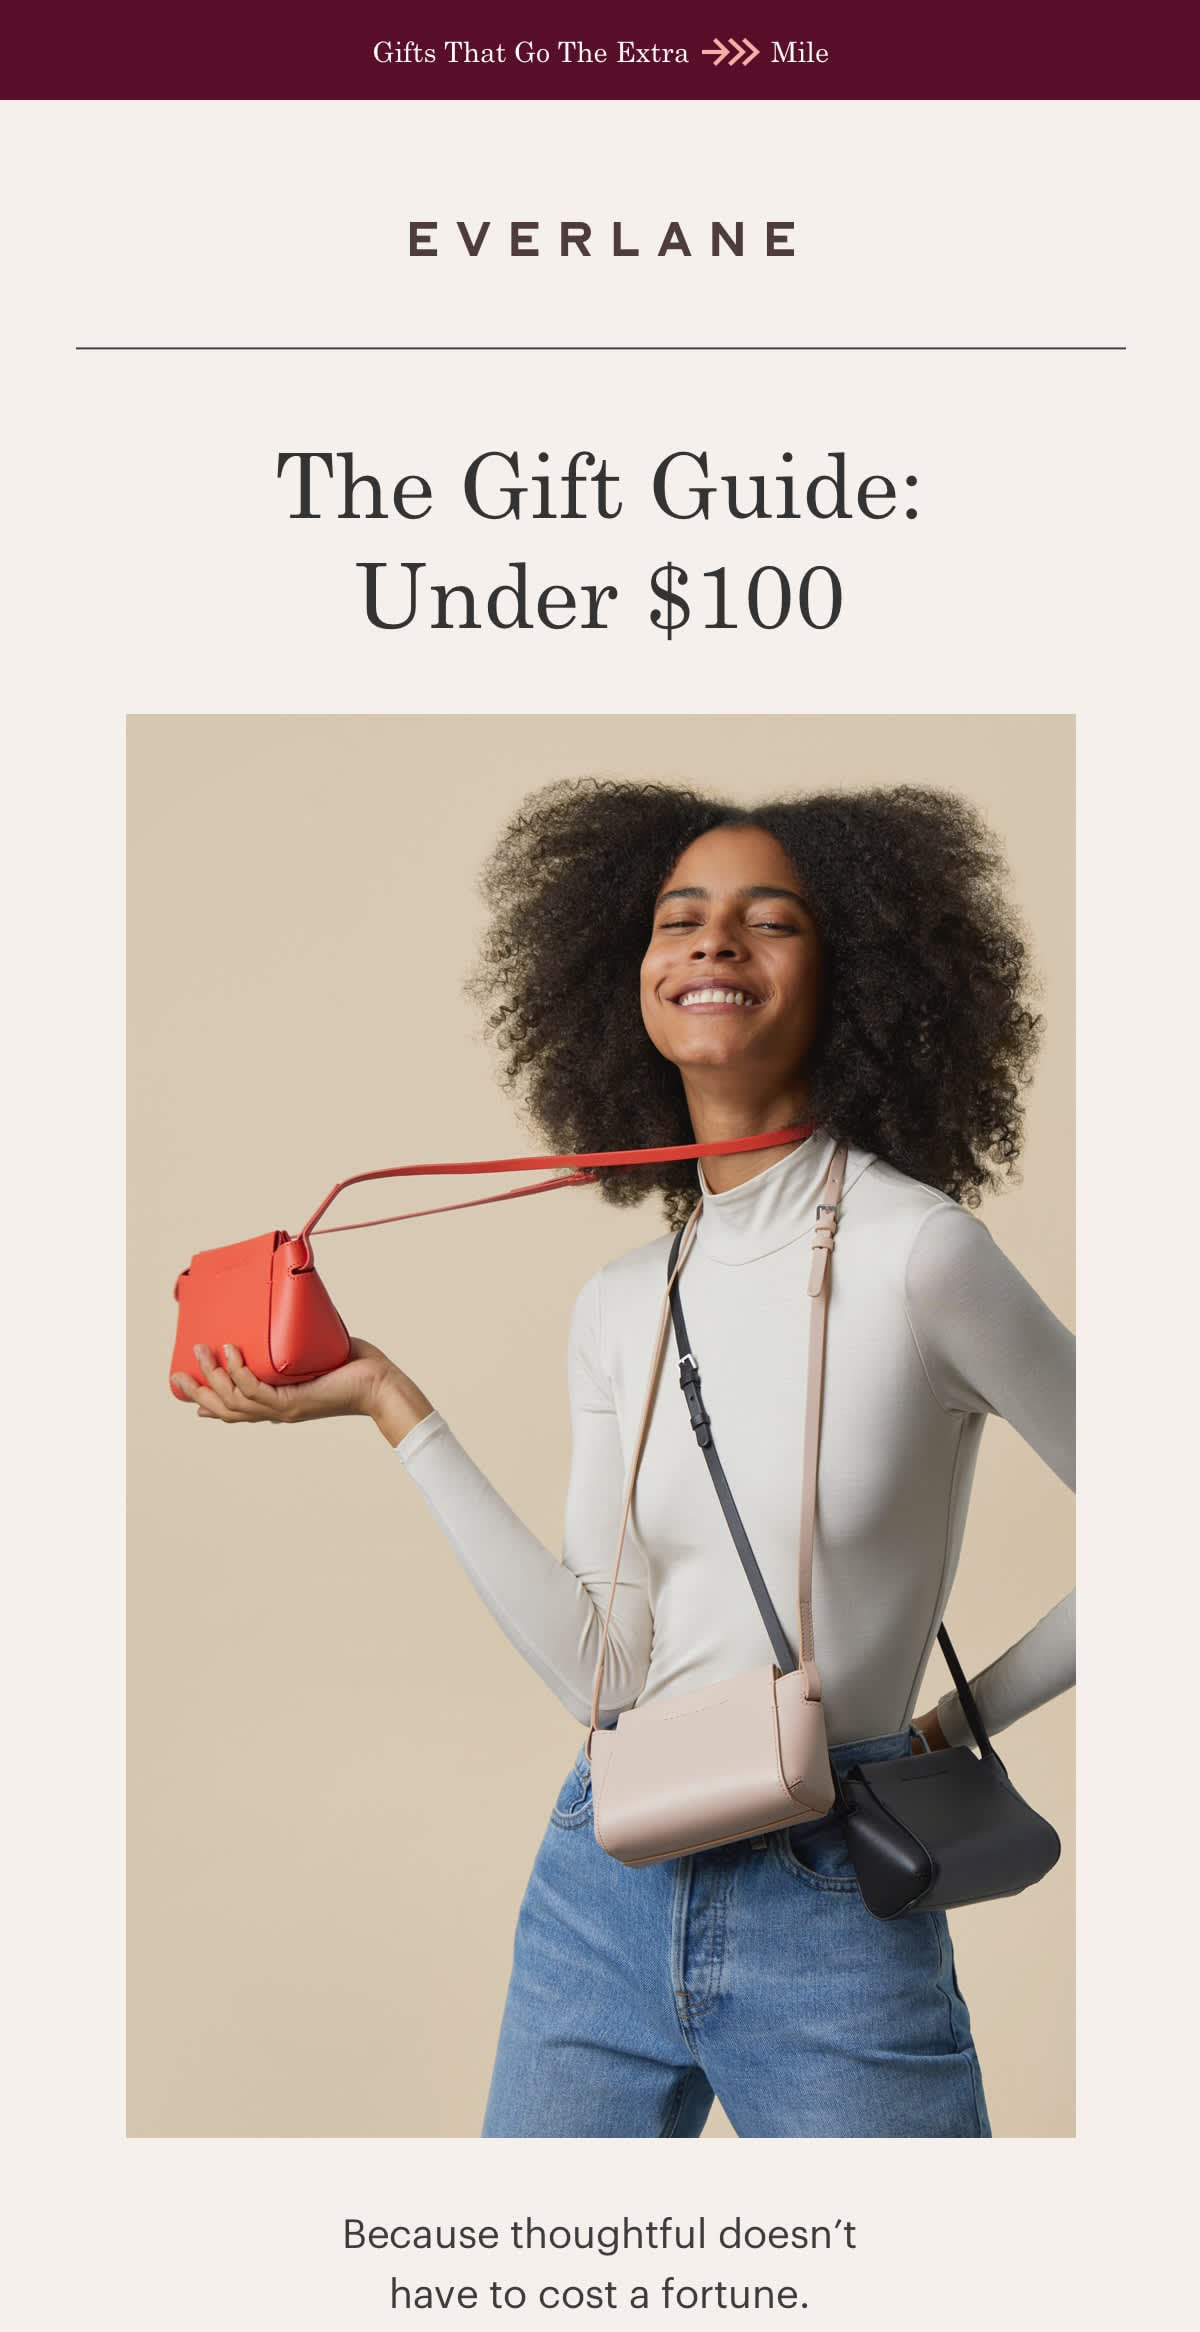 Everlane Thoughtful Gifts Under $100